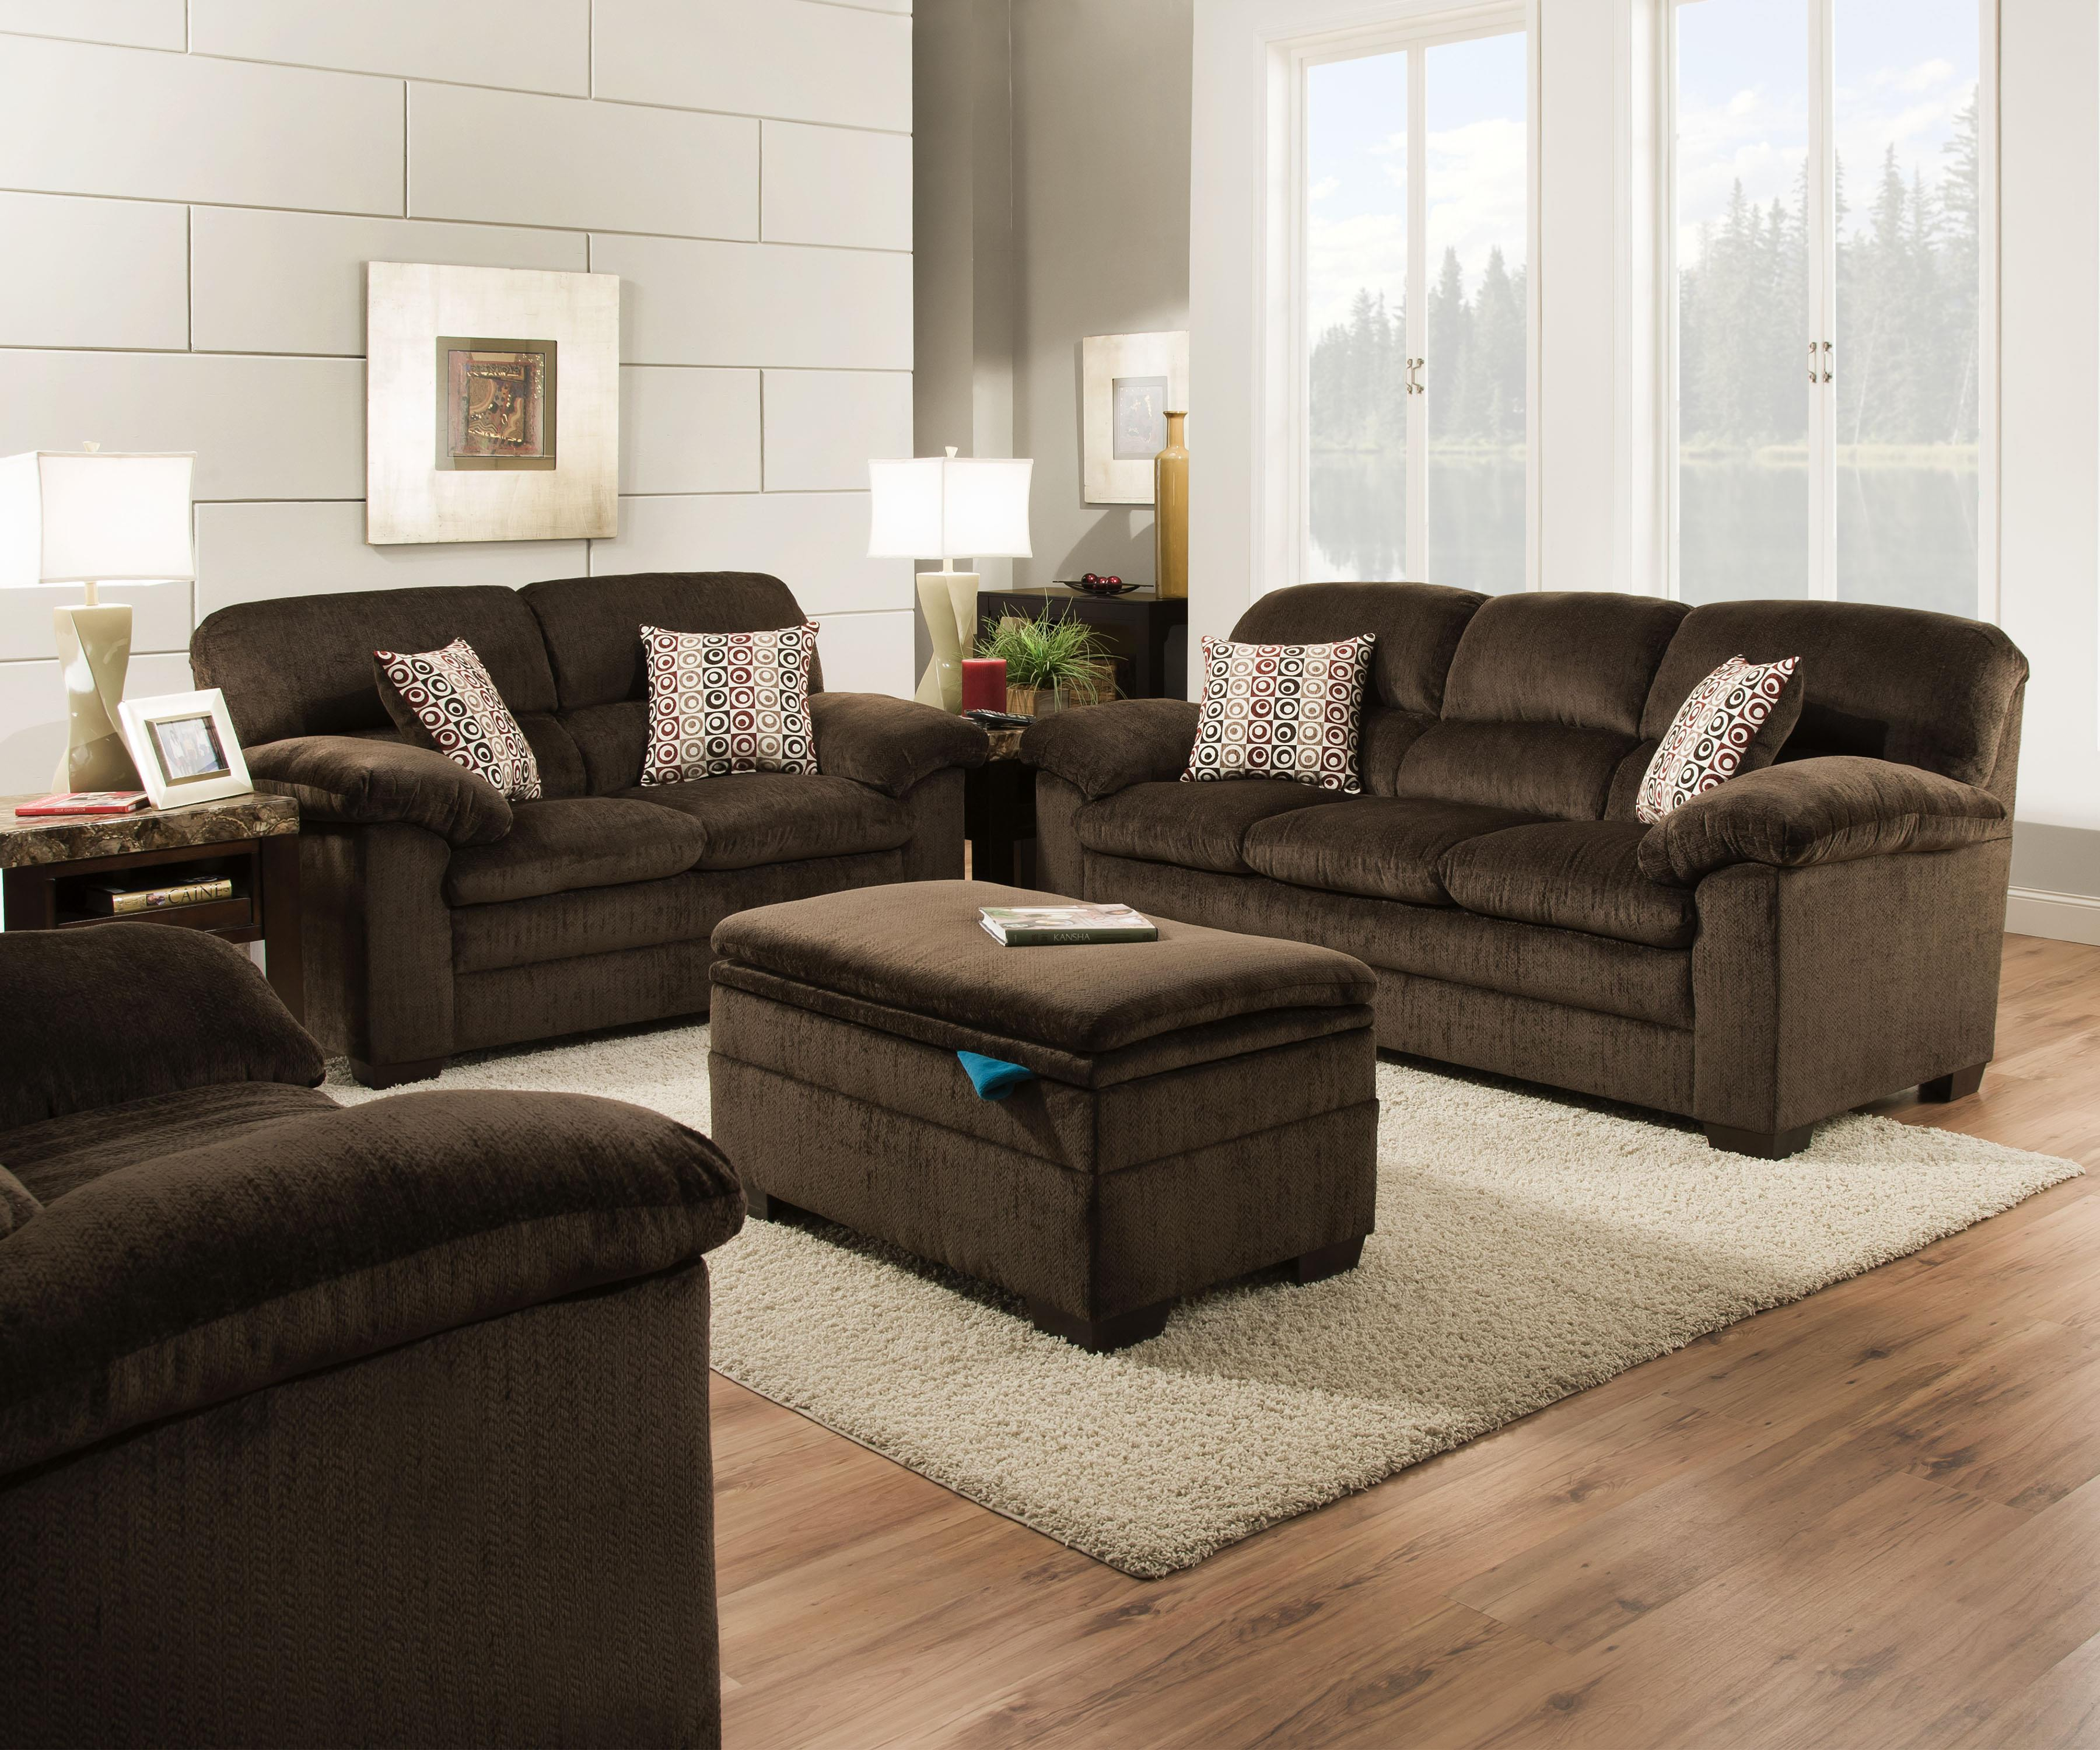 United Furniture Industries 3684 Stationary Living Room